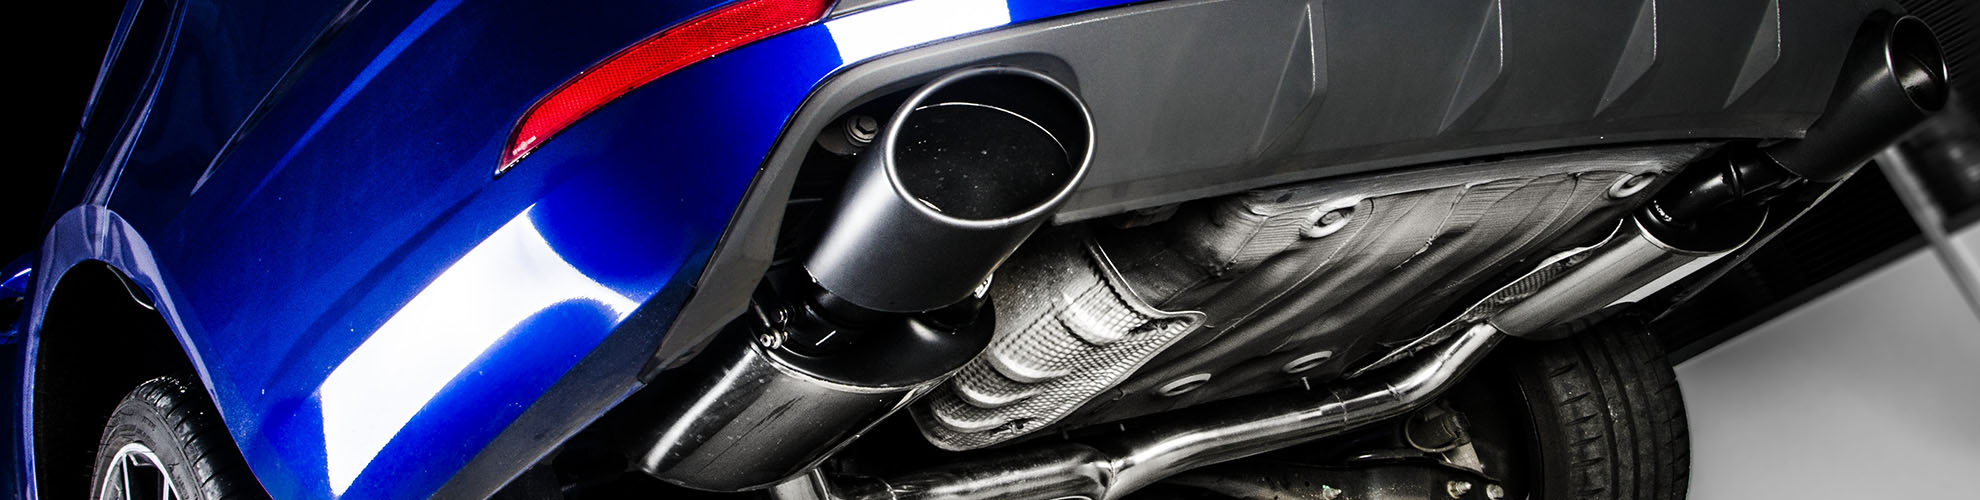 CERAMIC COATET TAILPIPES